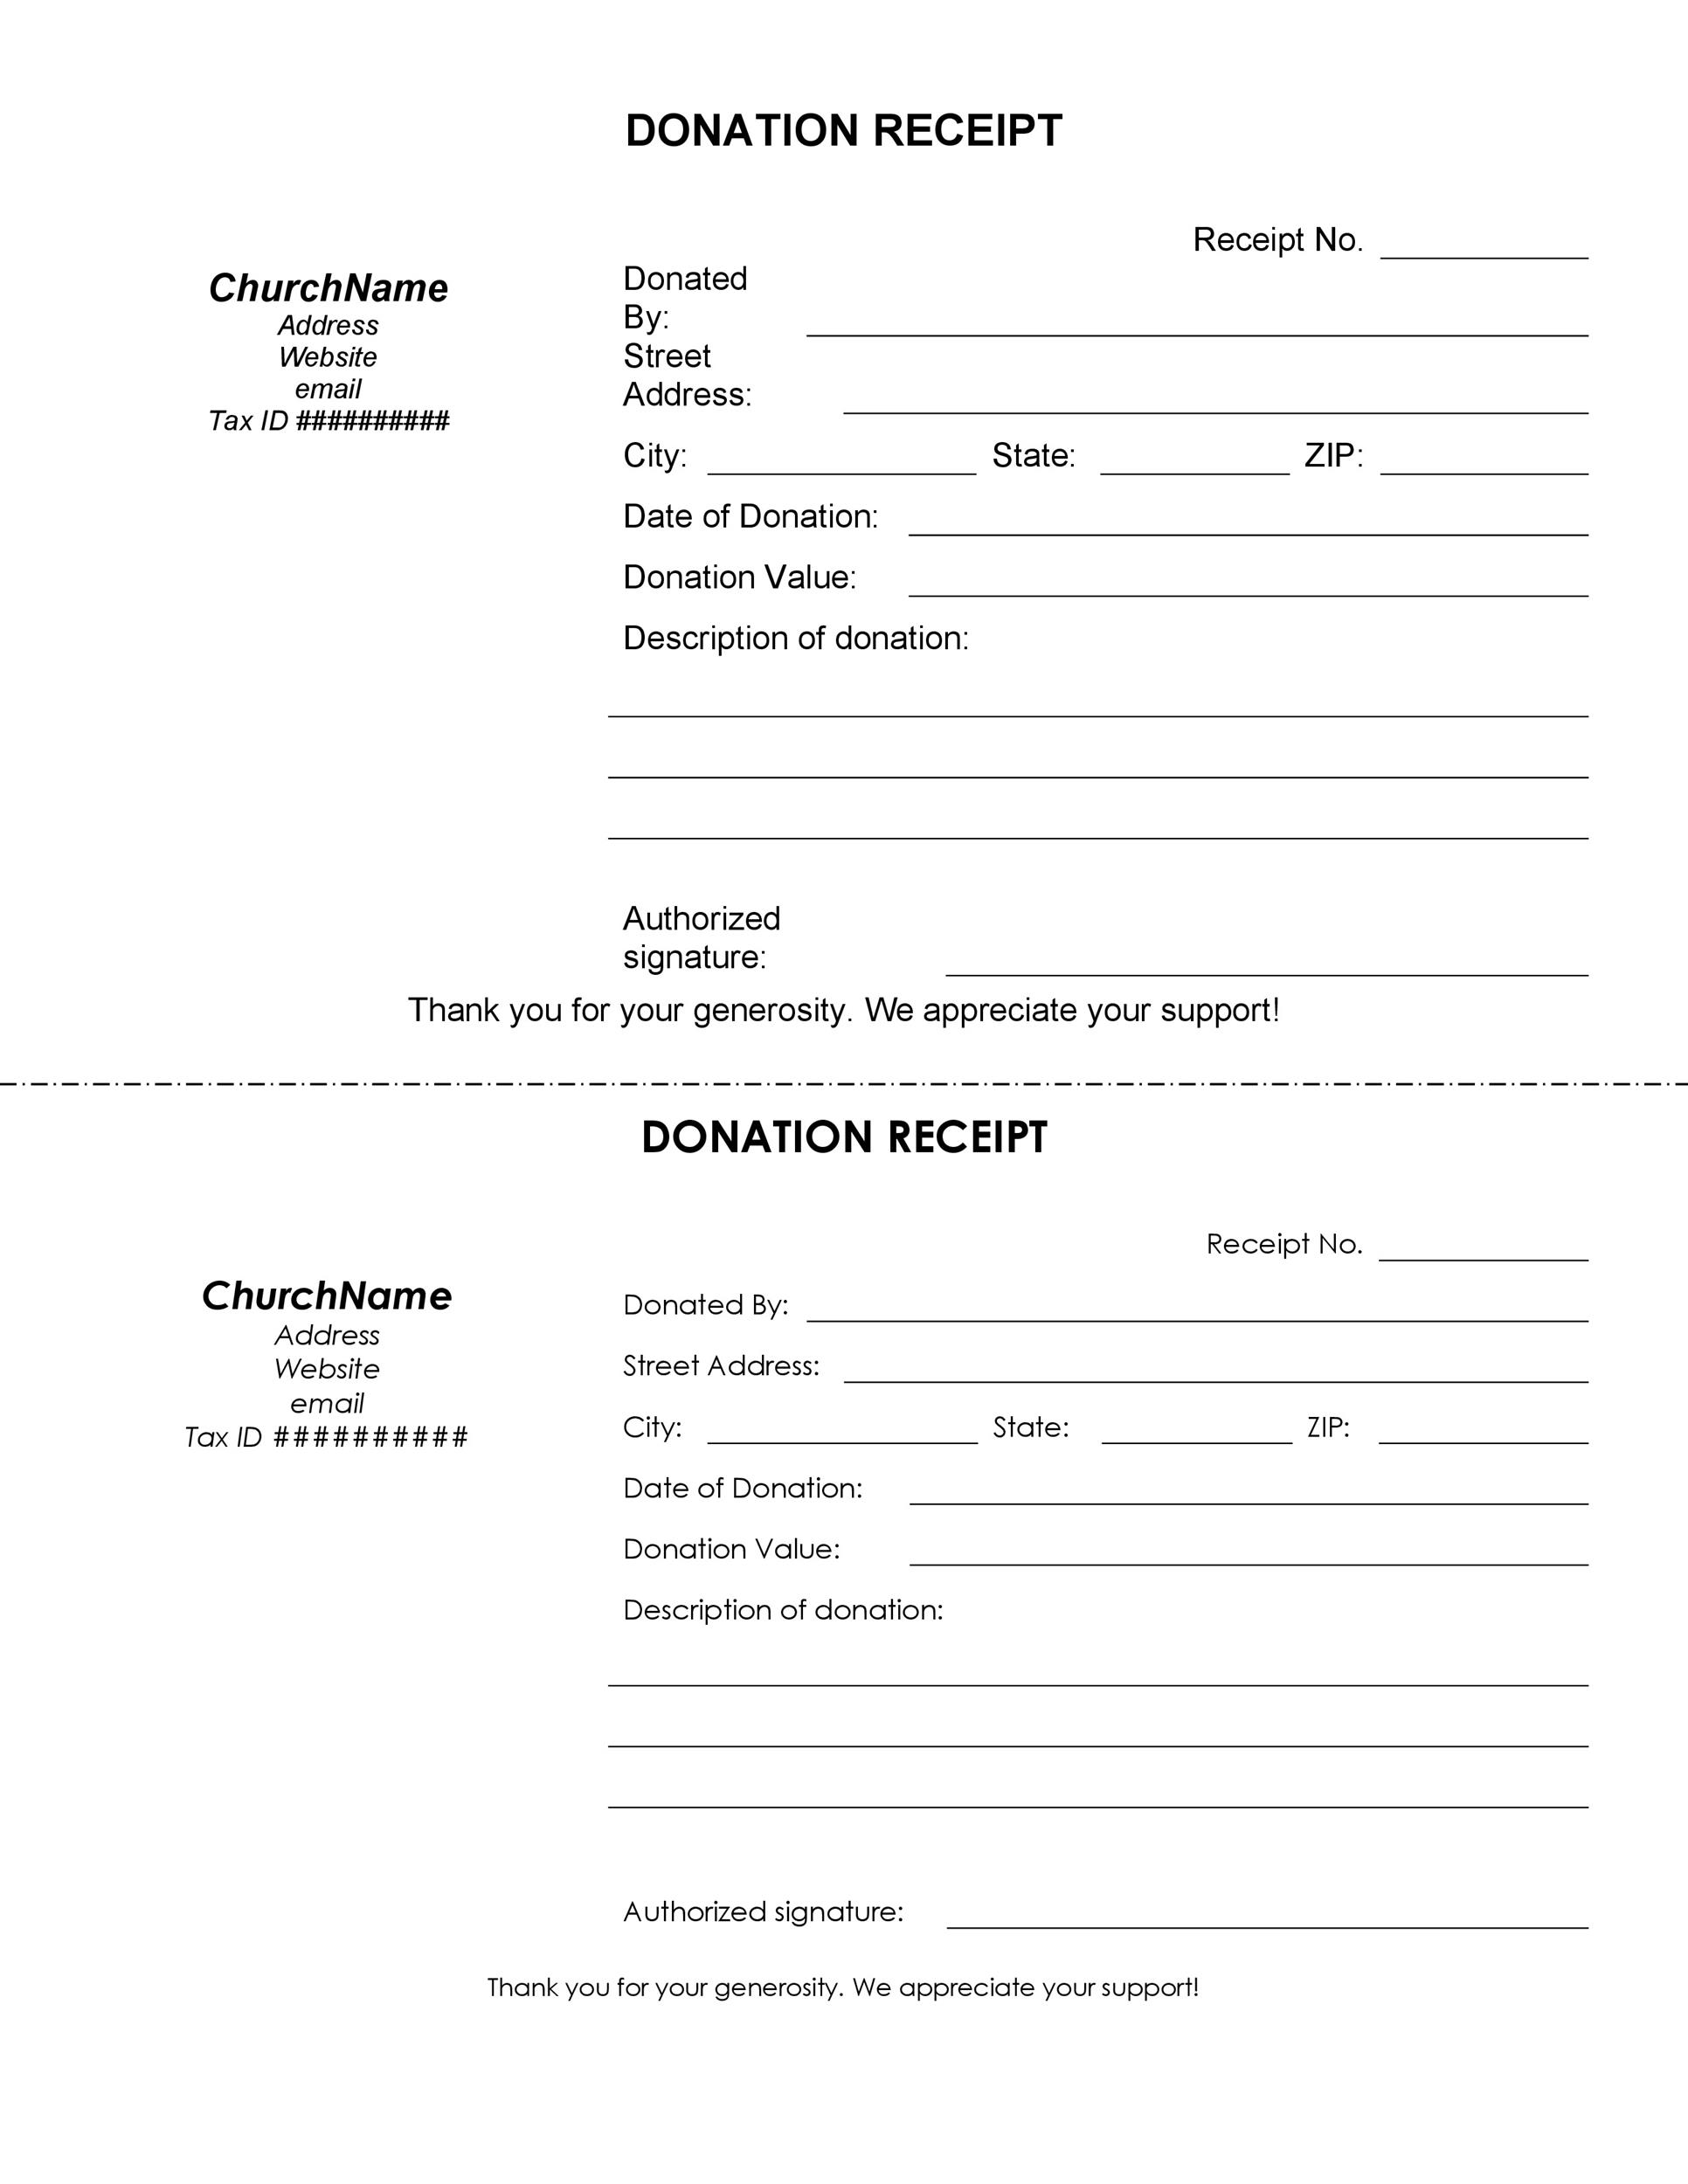 50 Free Receipt Templates Cash Sales Donation Taxi – Template Receipt